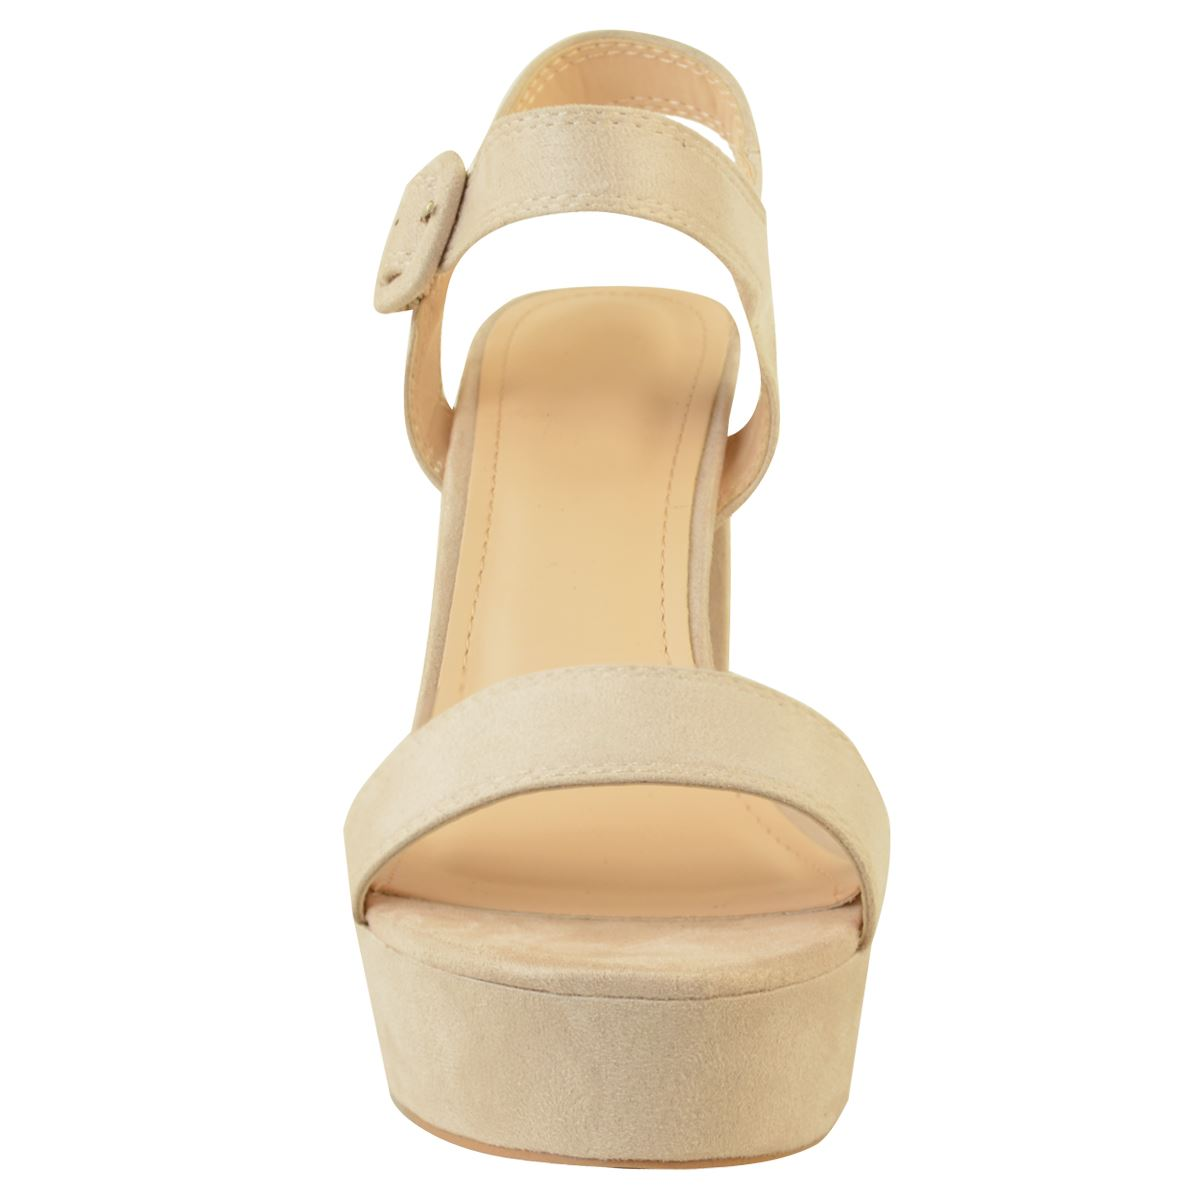 New-Womens-Summer-Platform-High-Heel-Sandals-Ladies-Open-Toe-Strappy-Party-Shoes thumbnail 36